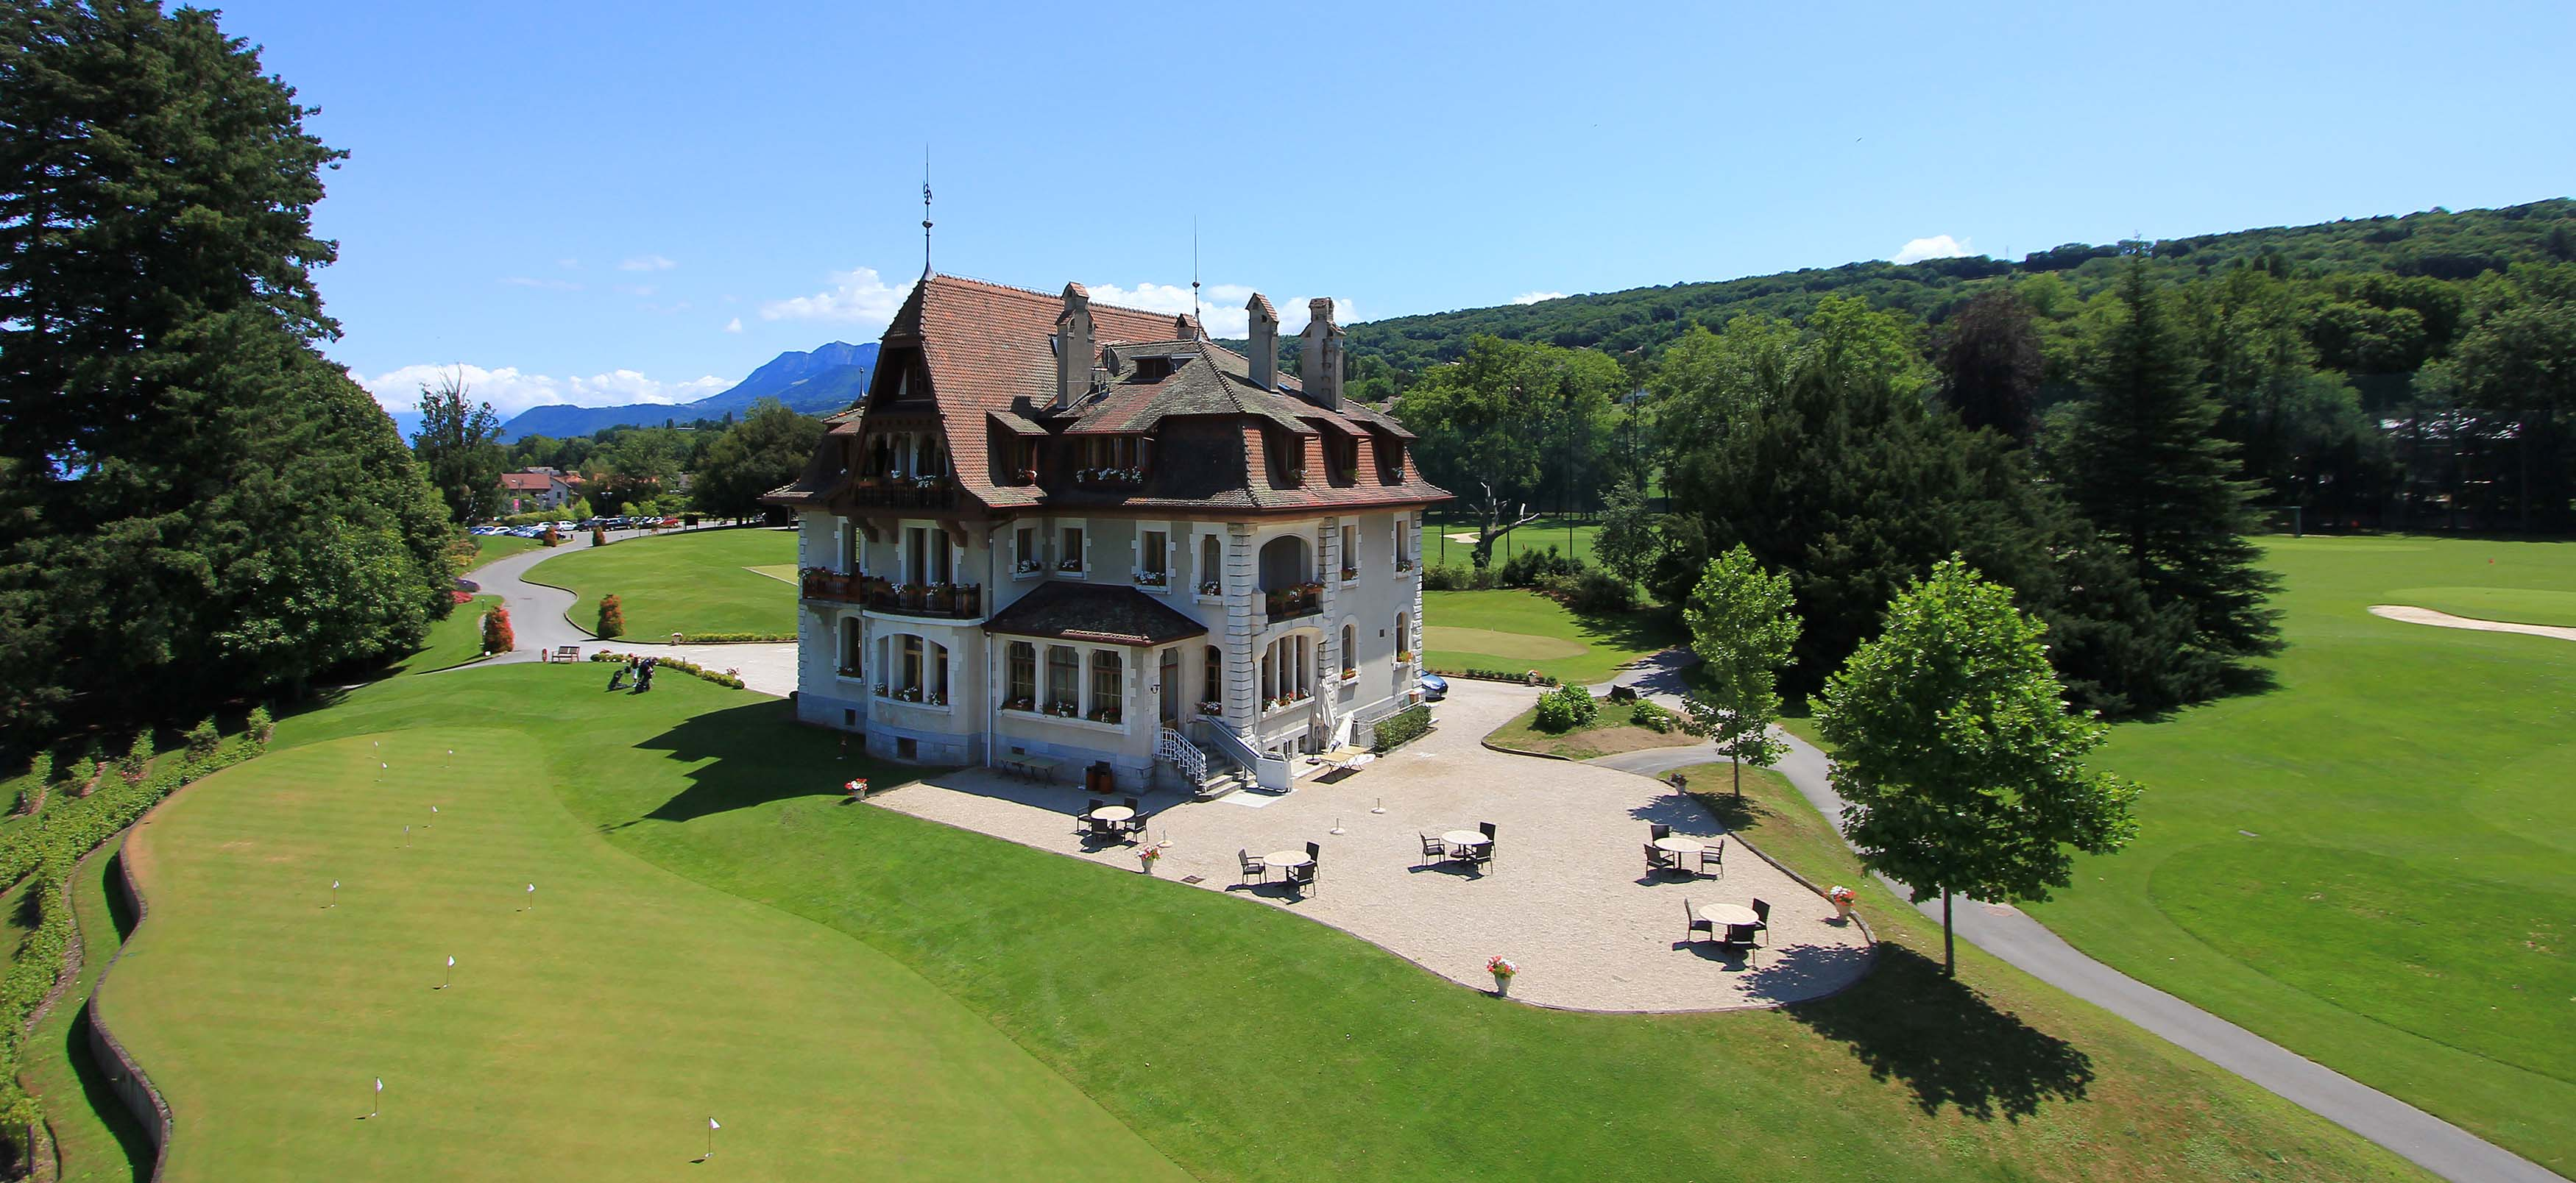 The Manoir Du Golf   Stay  Weekend Golf Evian  France  Europe